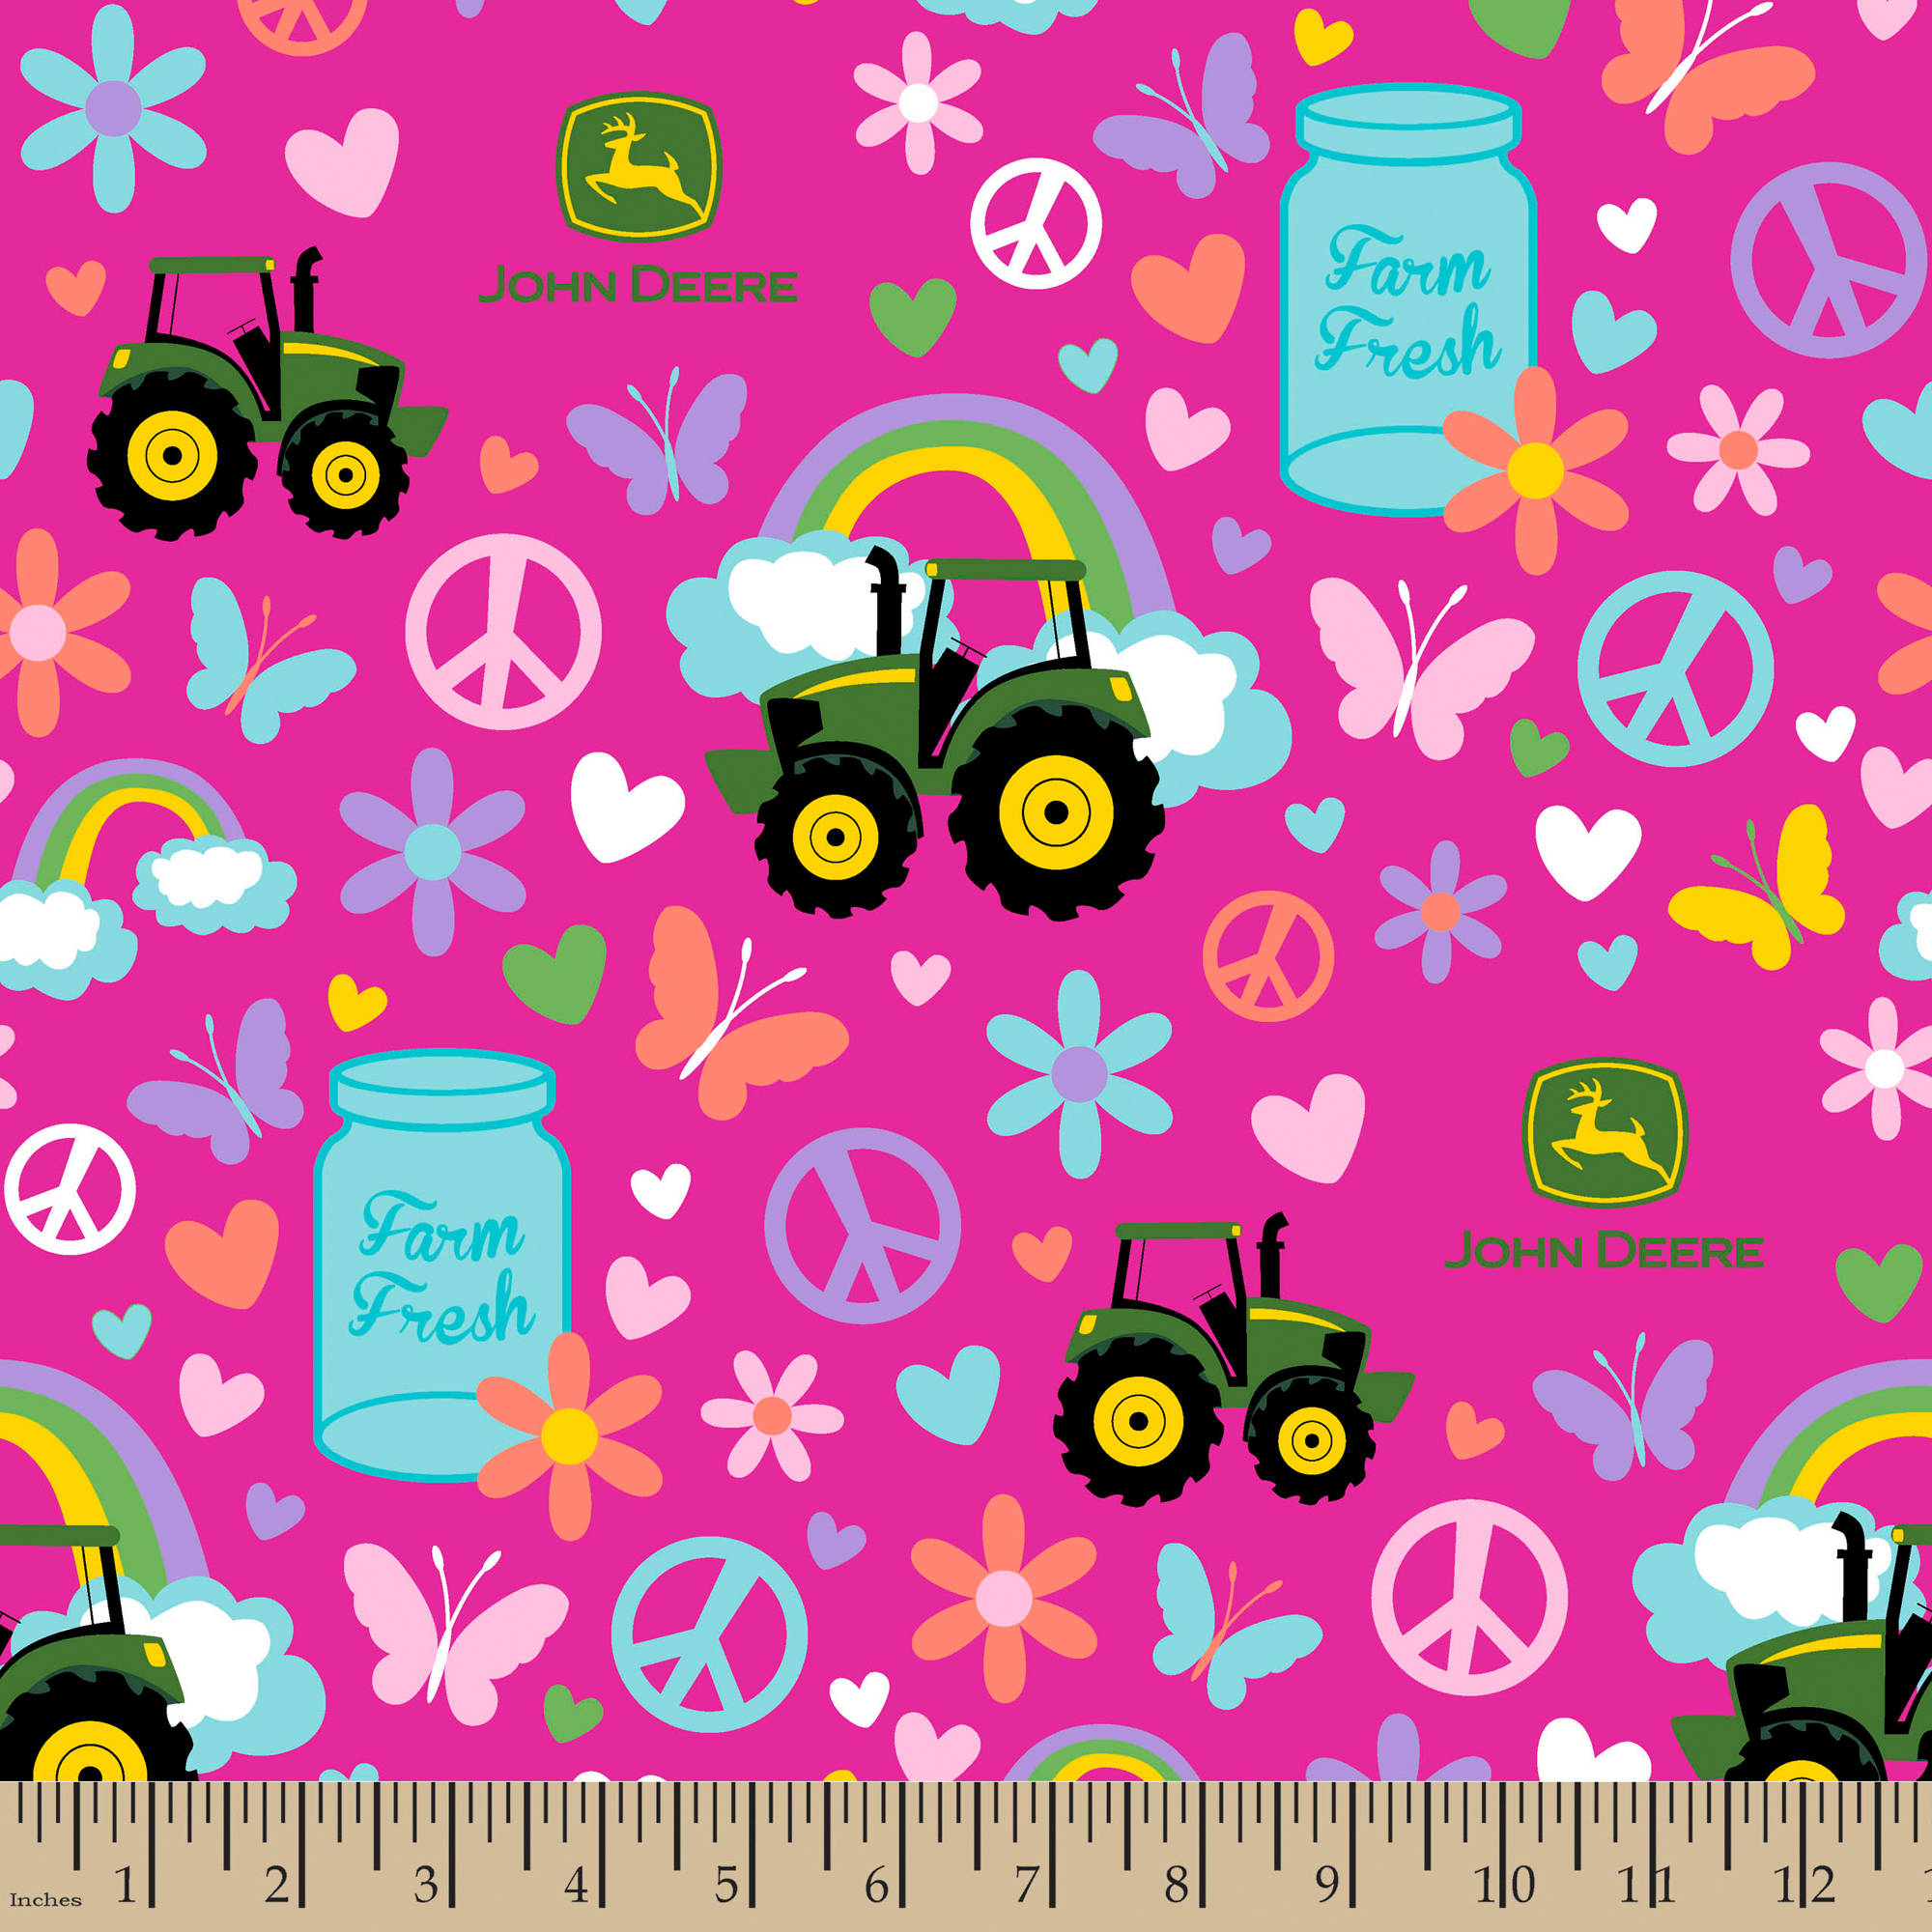 "John Deere Pink Farm Fresh, Multi-Colored, 100 Percent Cotton, 43/44""W, Fabric by the Yard"